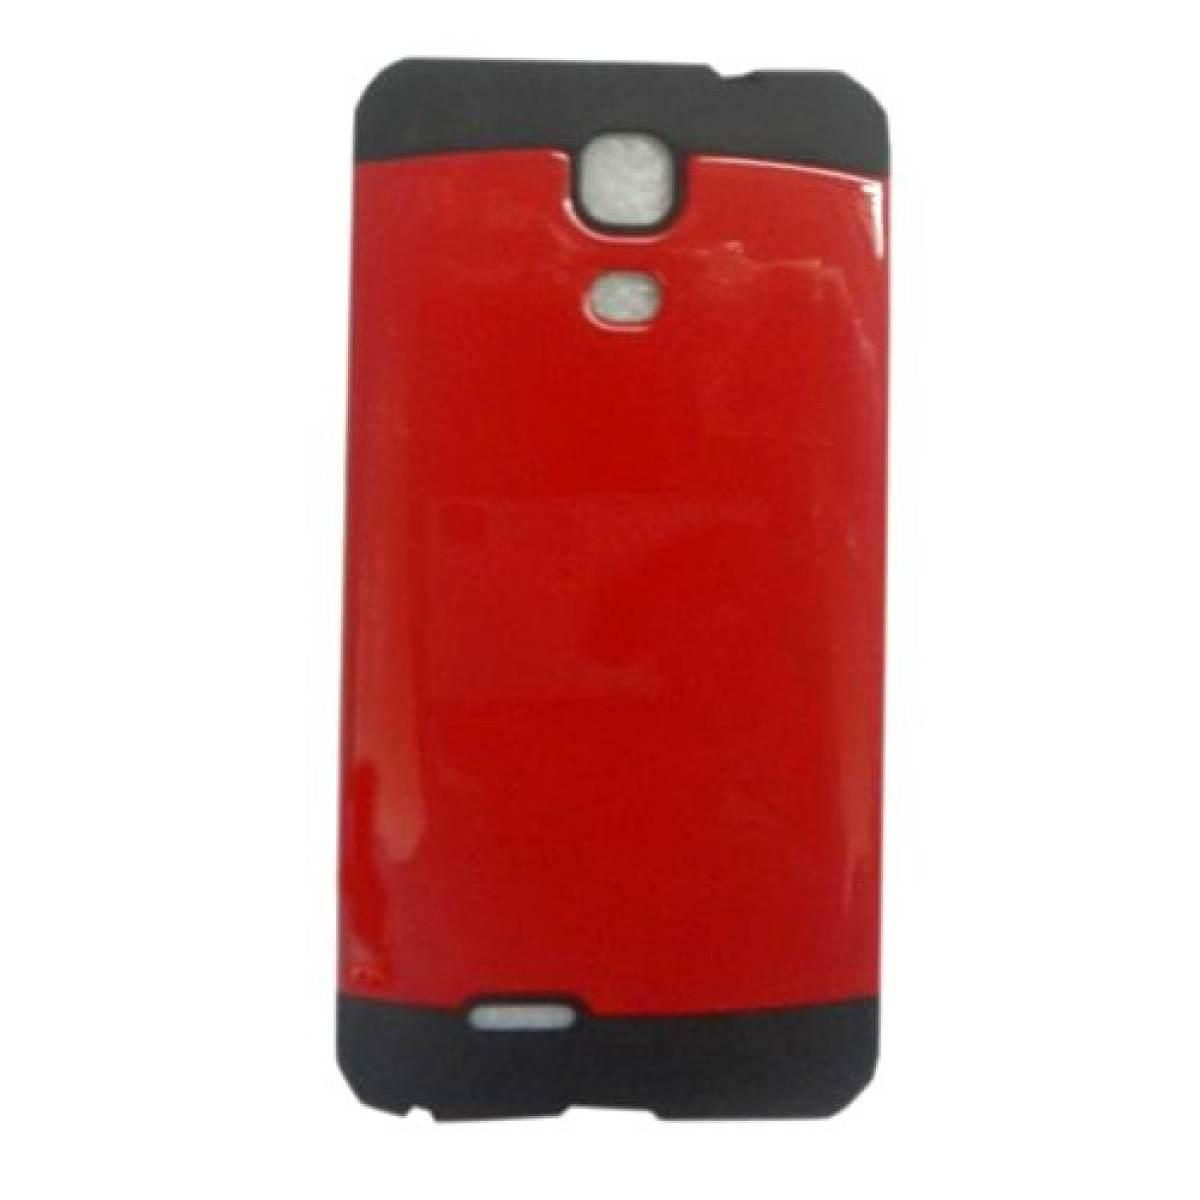 Slim Two Tone Hard TPU Case for Cherry Mobile Flare S4 (red)